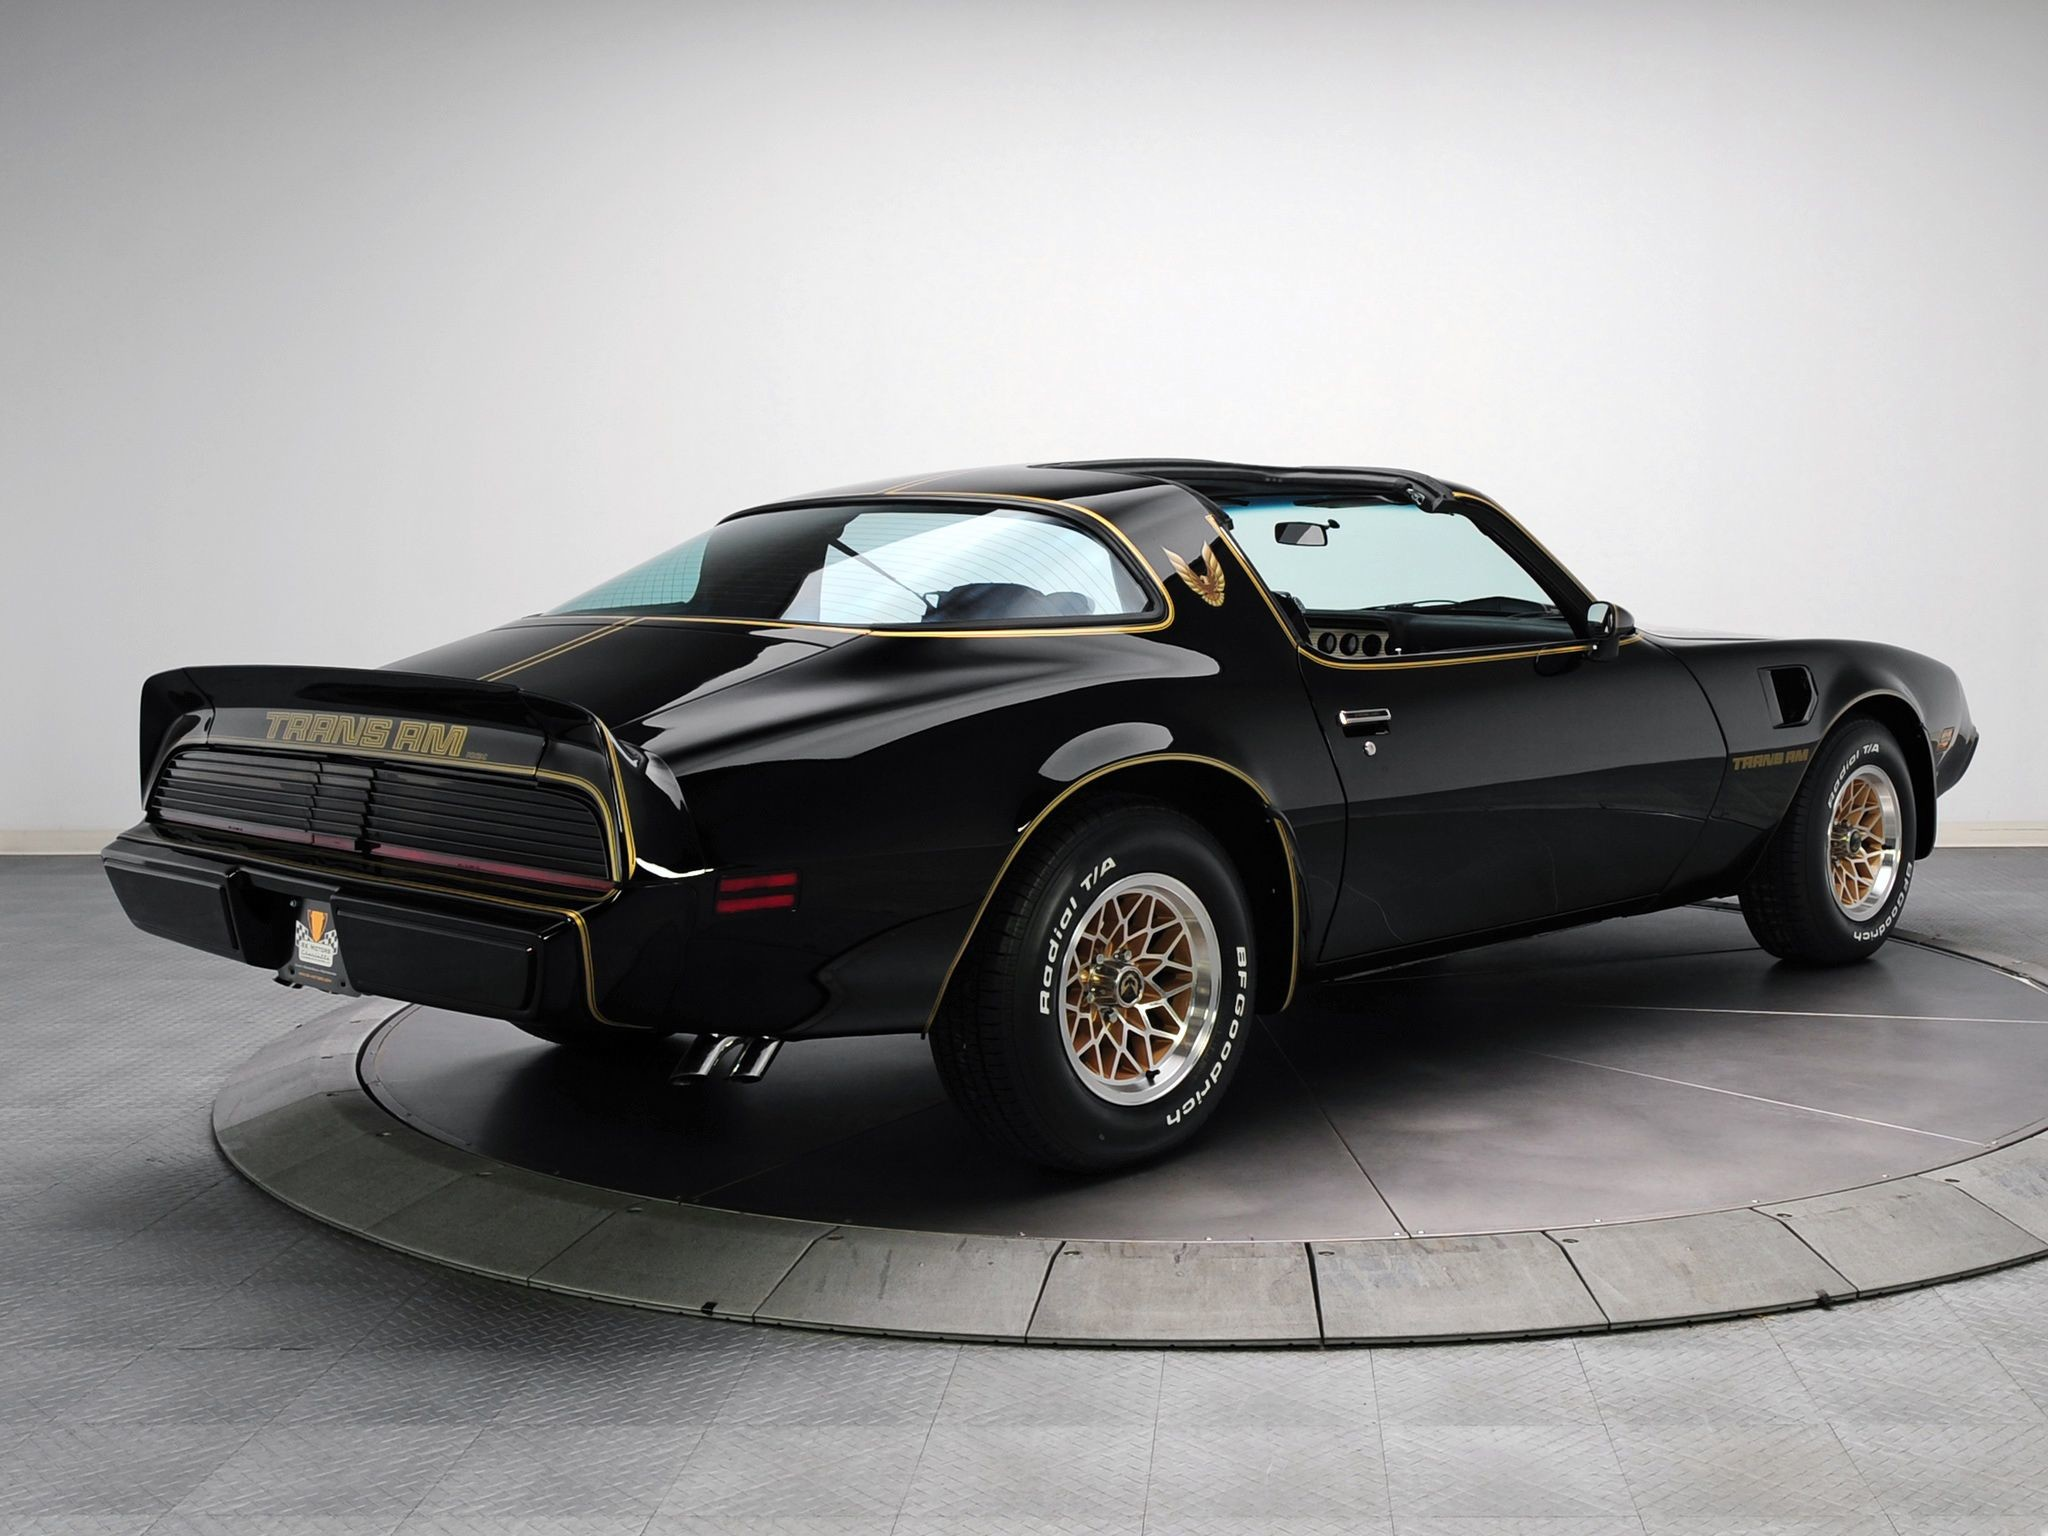 Res: 2048x1536, 1979 Pontiac Firebird Trans Am T-A 6-6 L78 S-E muscle classic daytona pace  muscle classic g wallpaper background